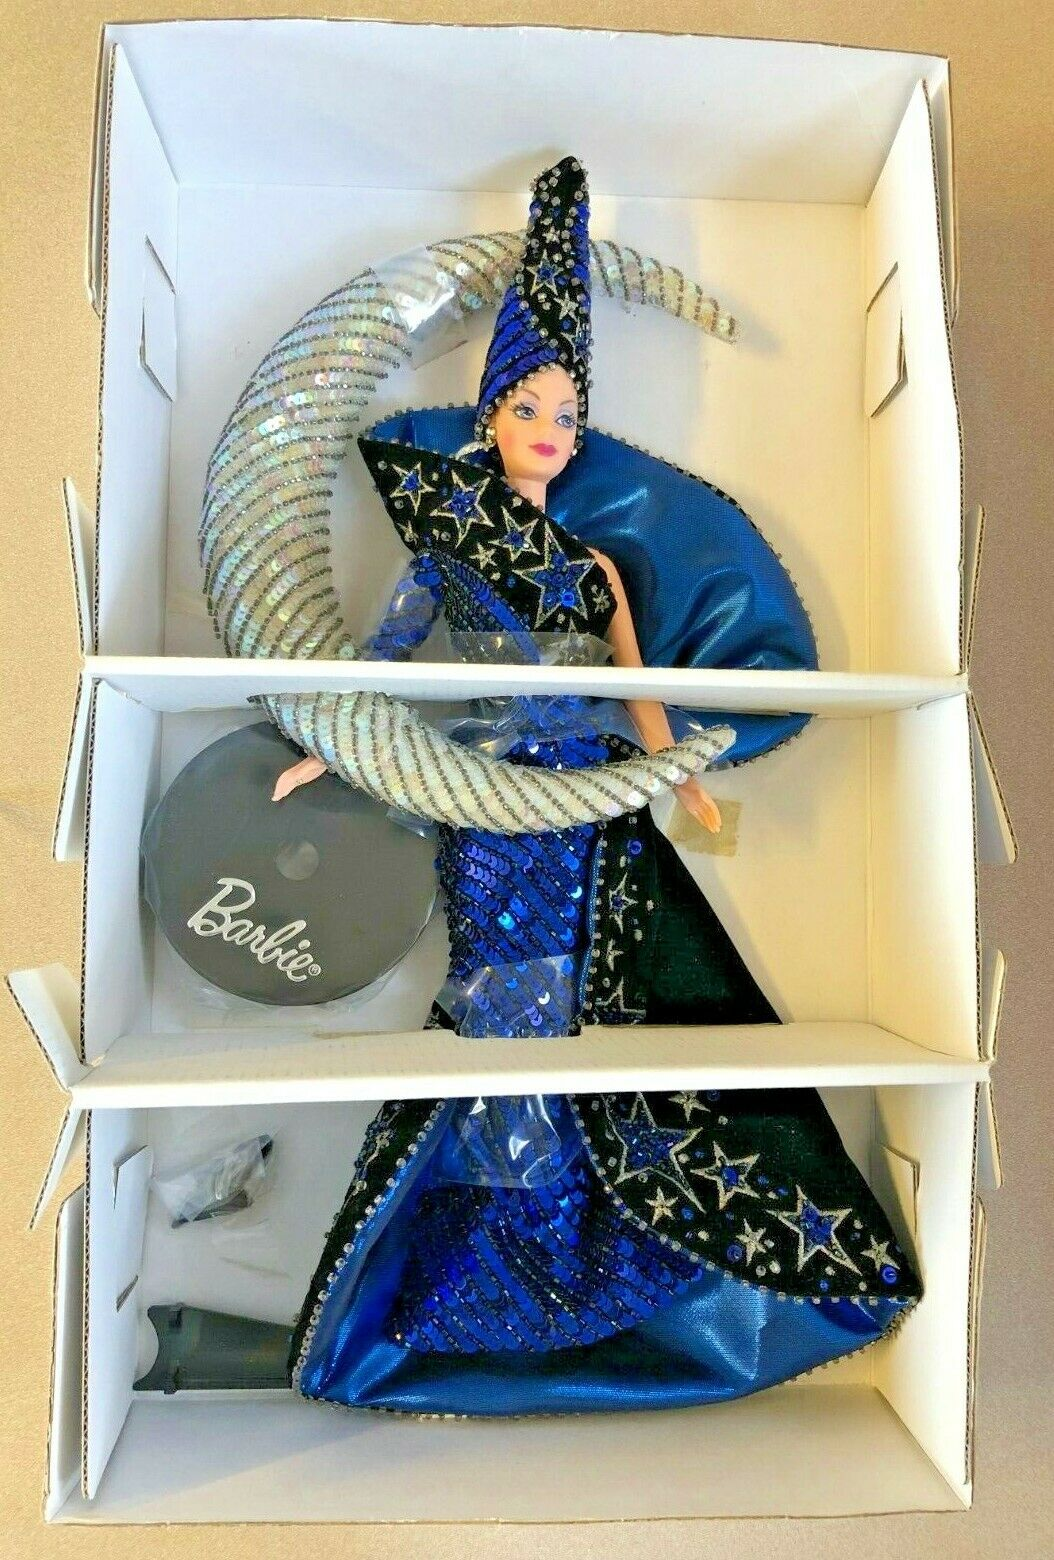 VINTAGE 1996 MOON GODDESS BARBIE Doll by Bob Mackie MATTEL  14105  MIB   NEW